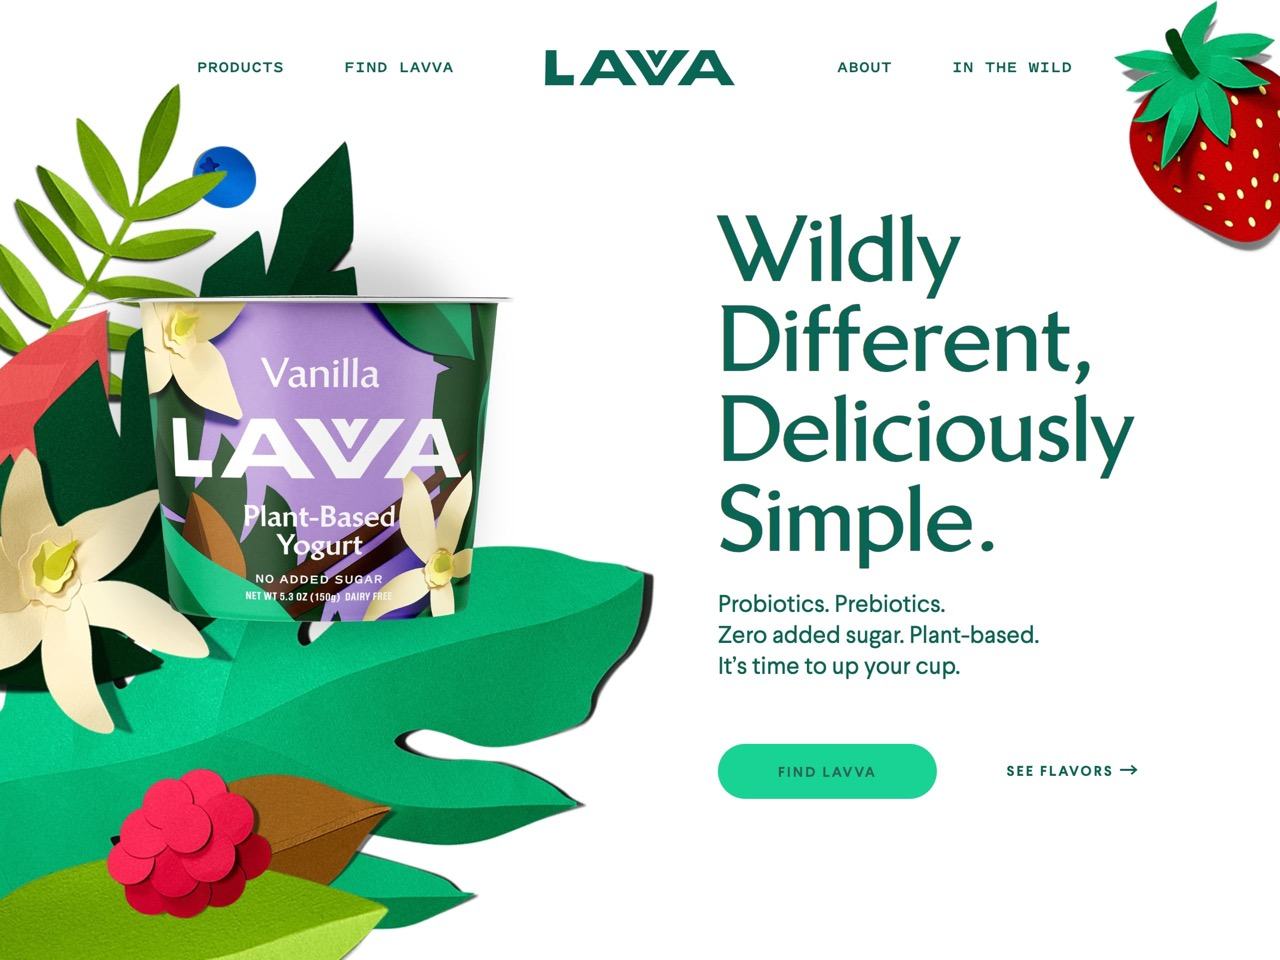 Lavva   dairy free yogurt   plant based yogurt with zero sugar